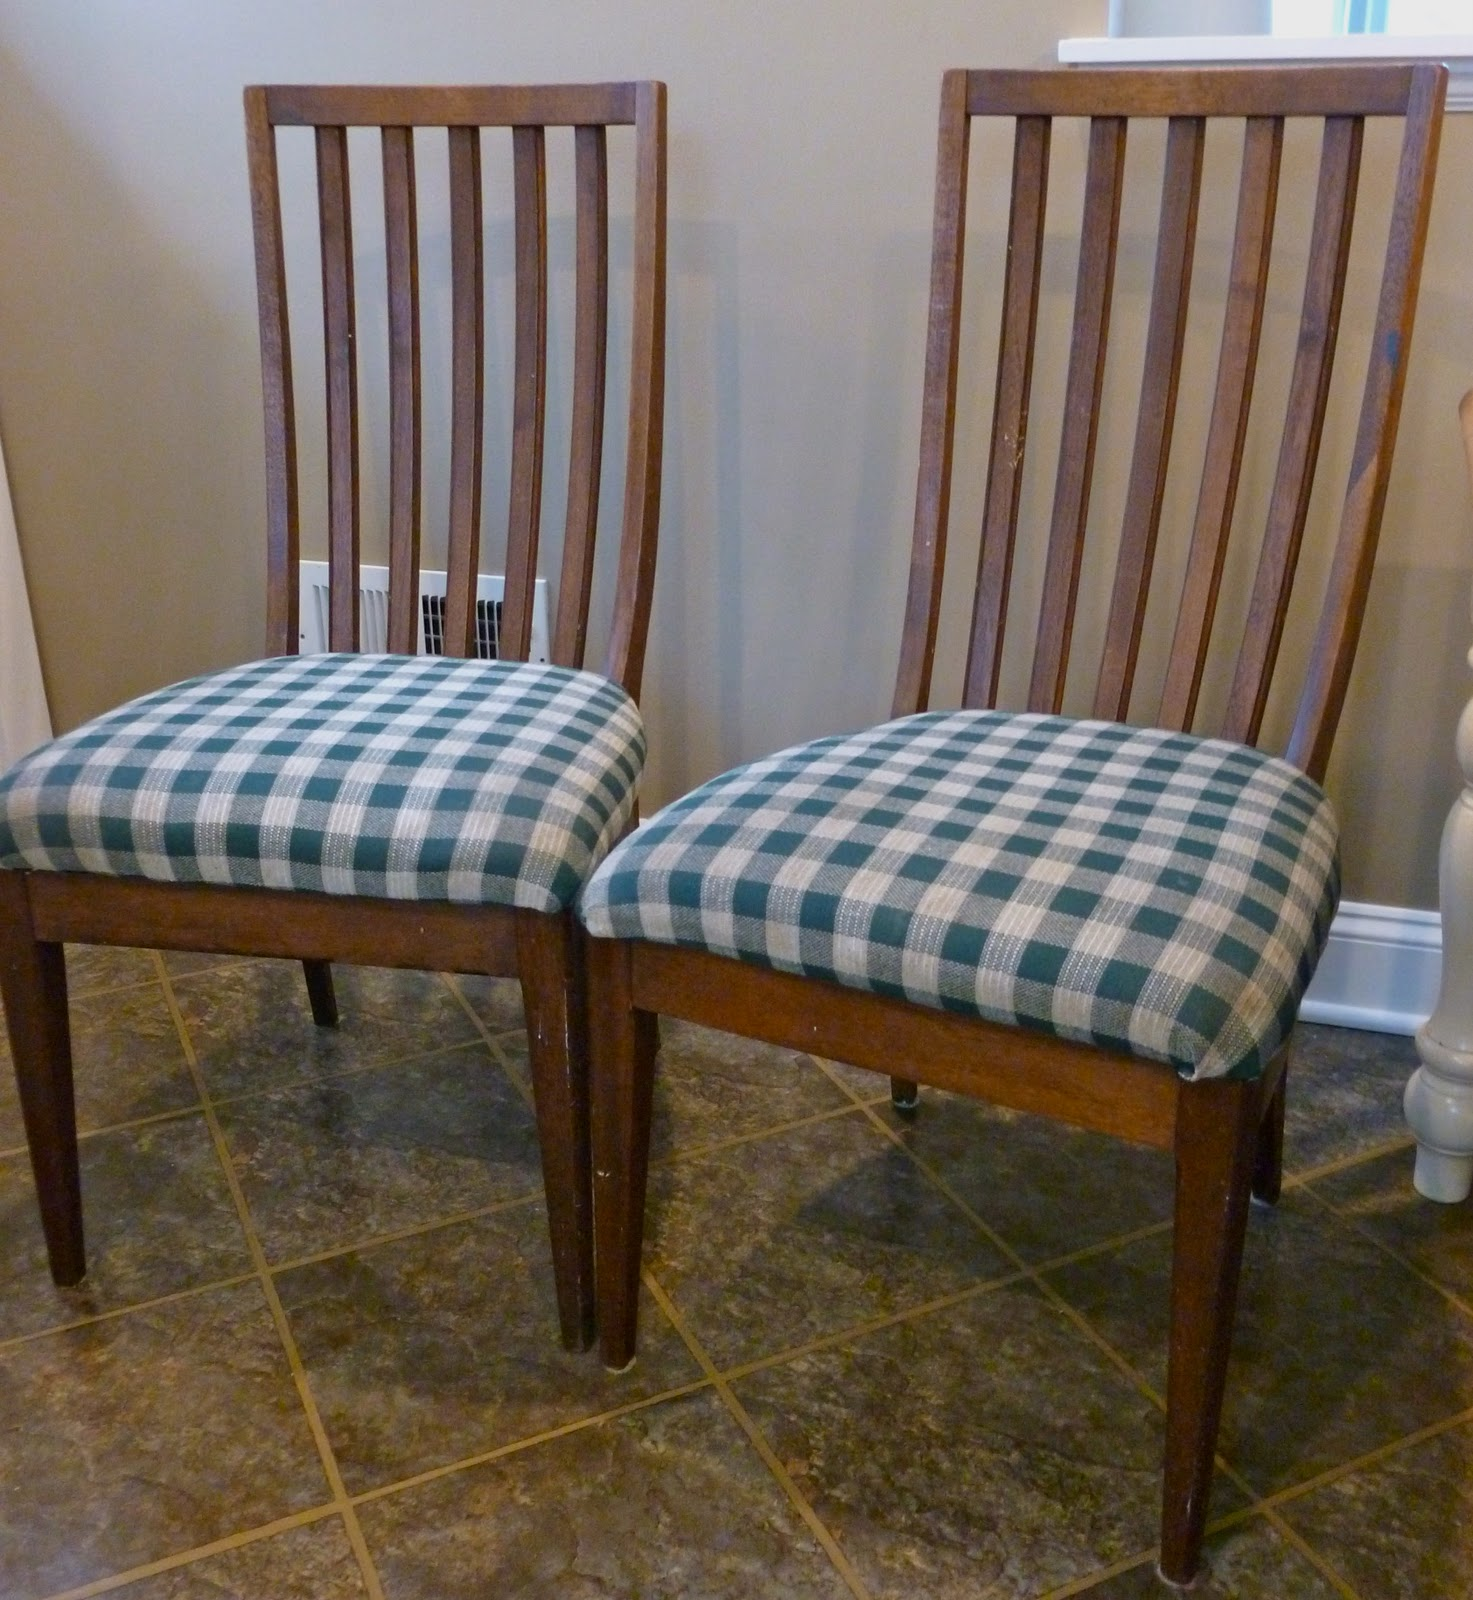 Kitchen Table And Chairs Makeover: So Anyways, I Started By Removing The Seat Cushion And